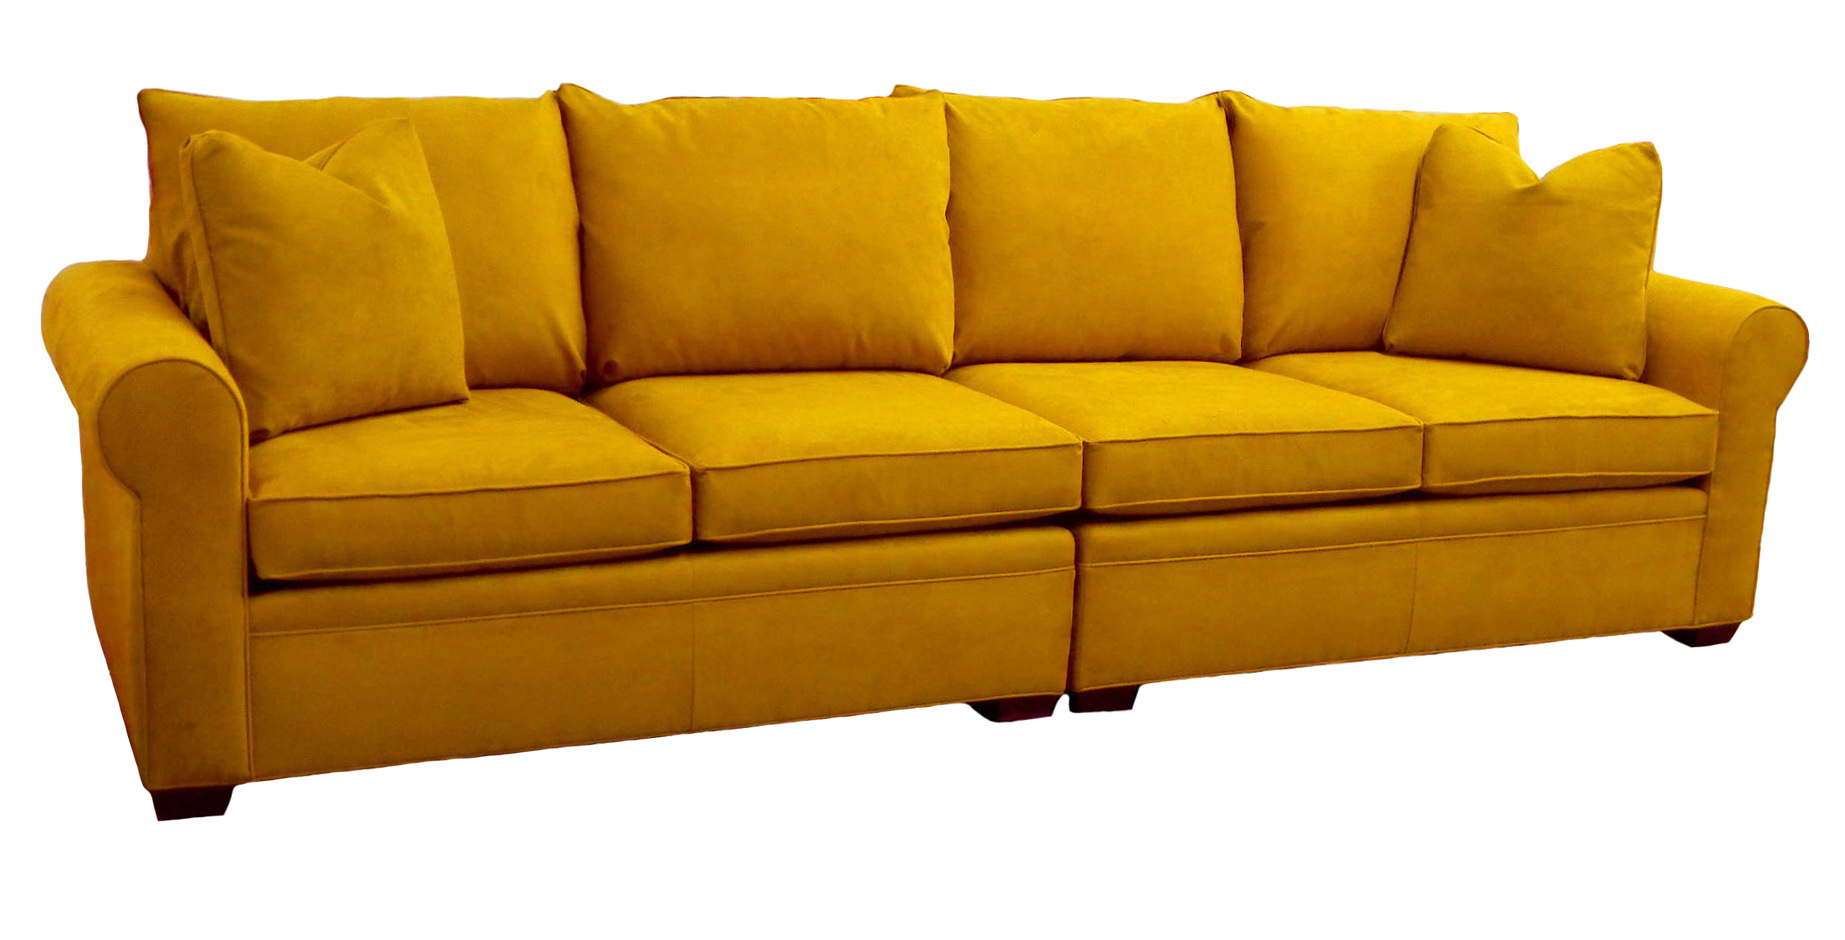 Sofa L 2 X 2 Photos Examples Custom Sectional Sofas Carolina Chair Furniture